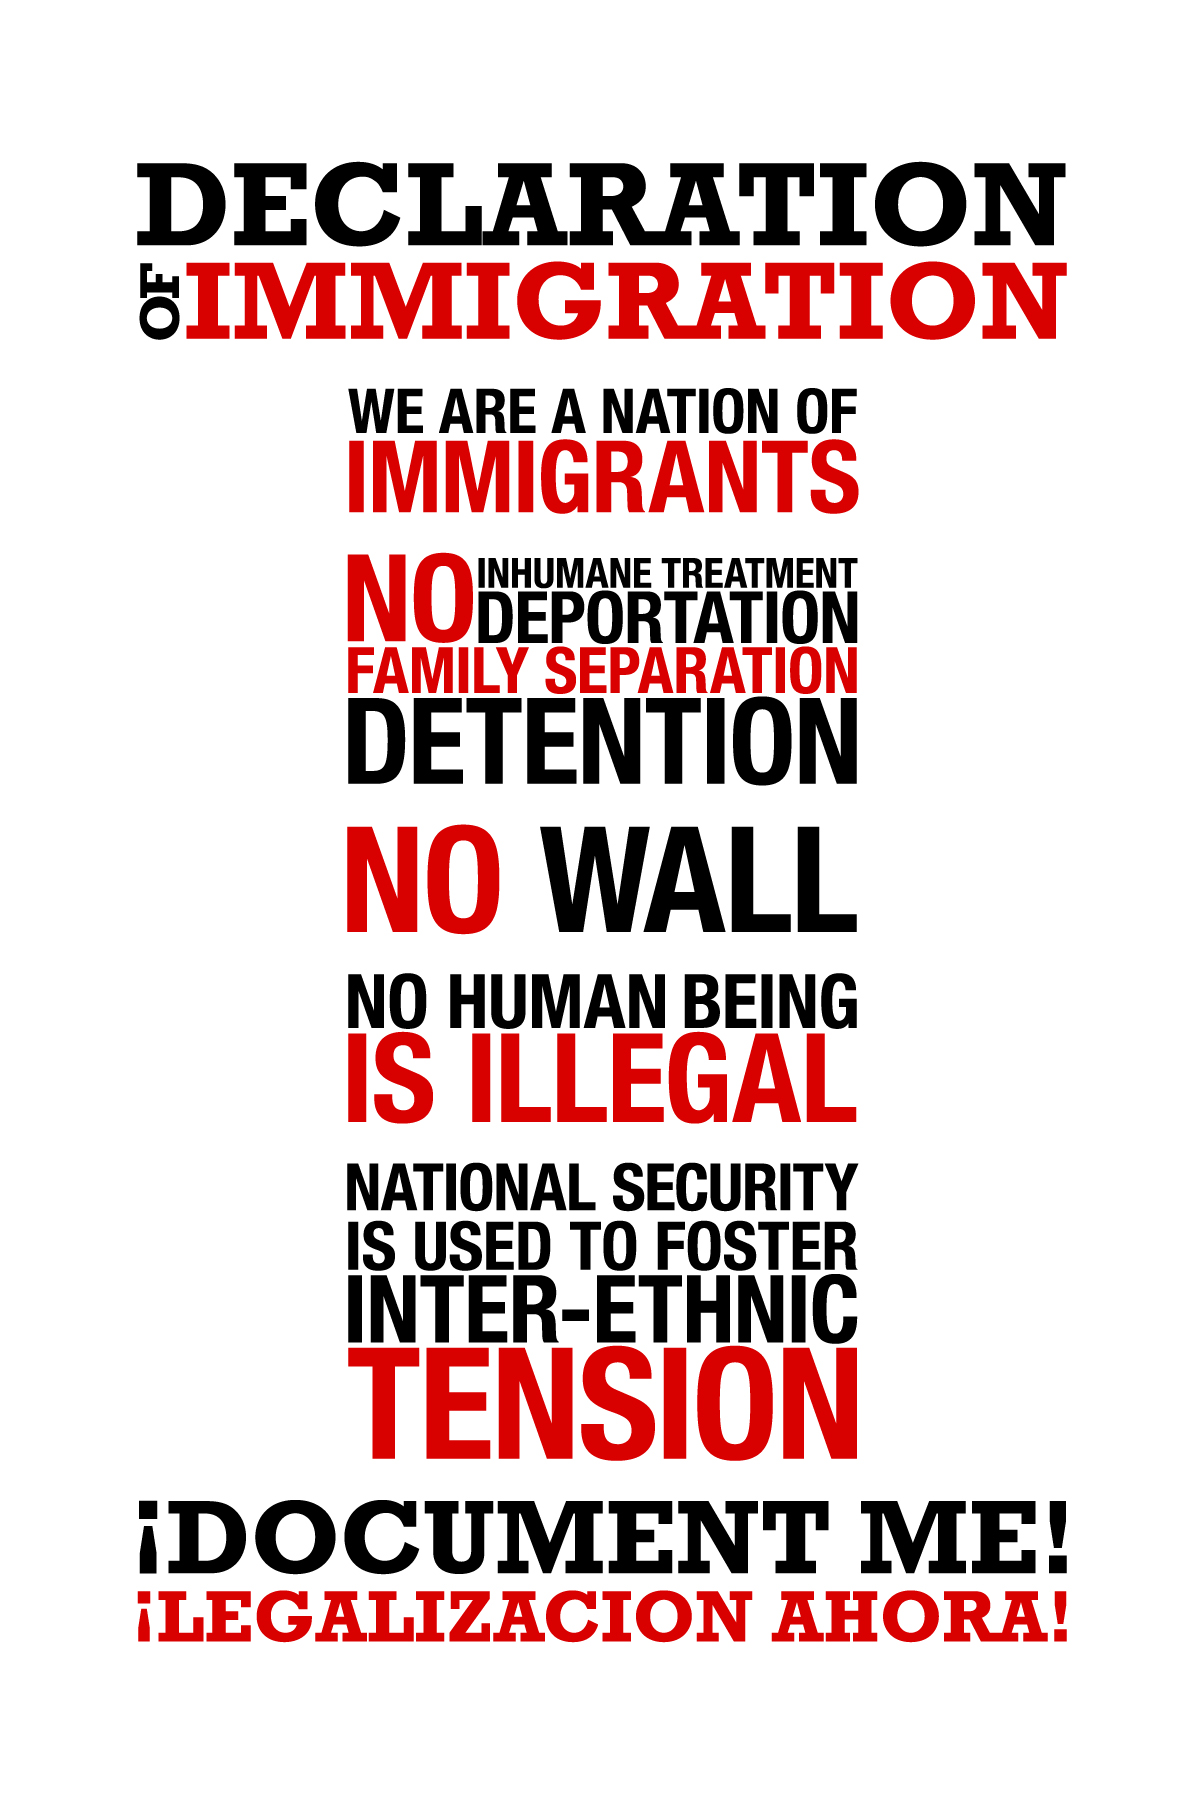 The Declaration of Immigration Sticker